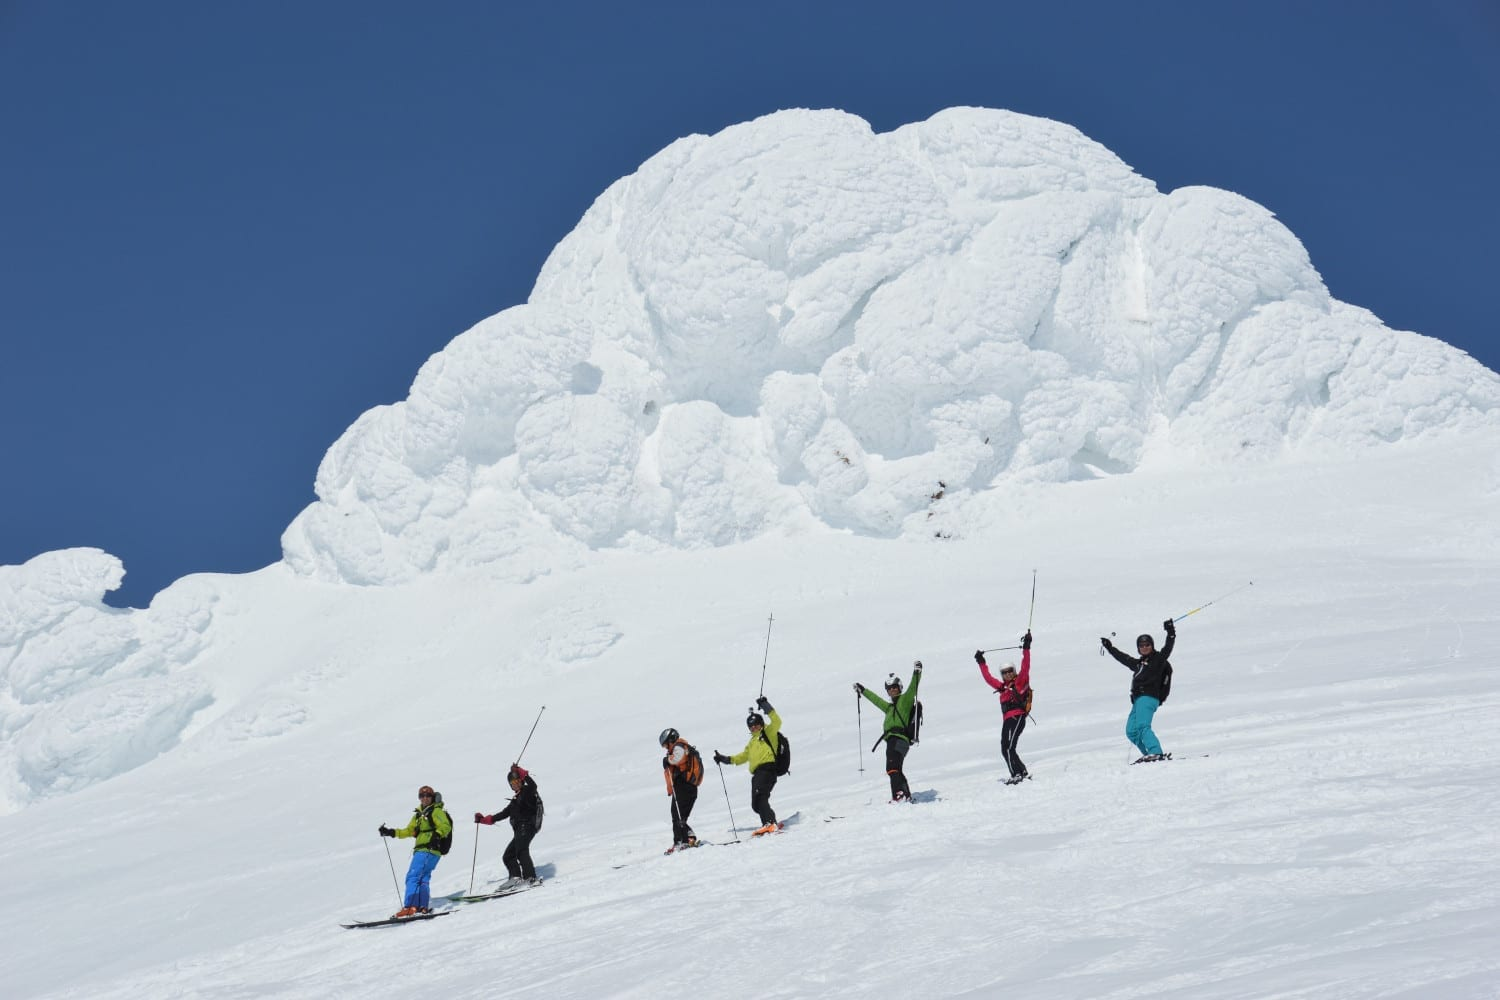 Group of skiers in Kamchatka